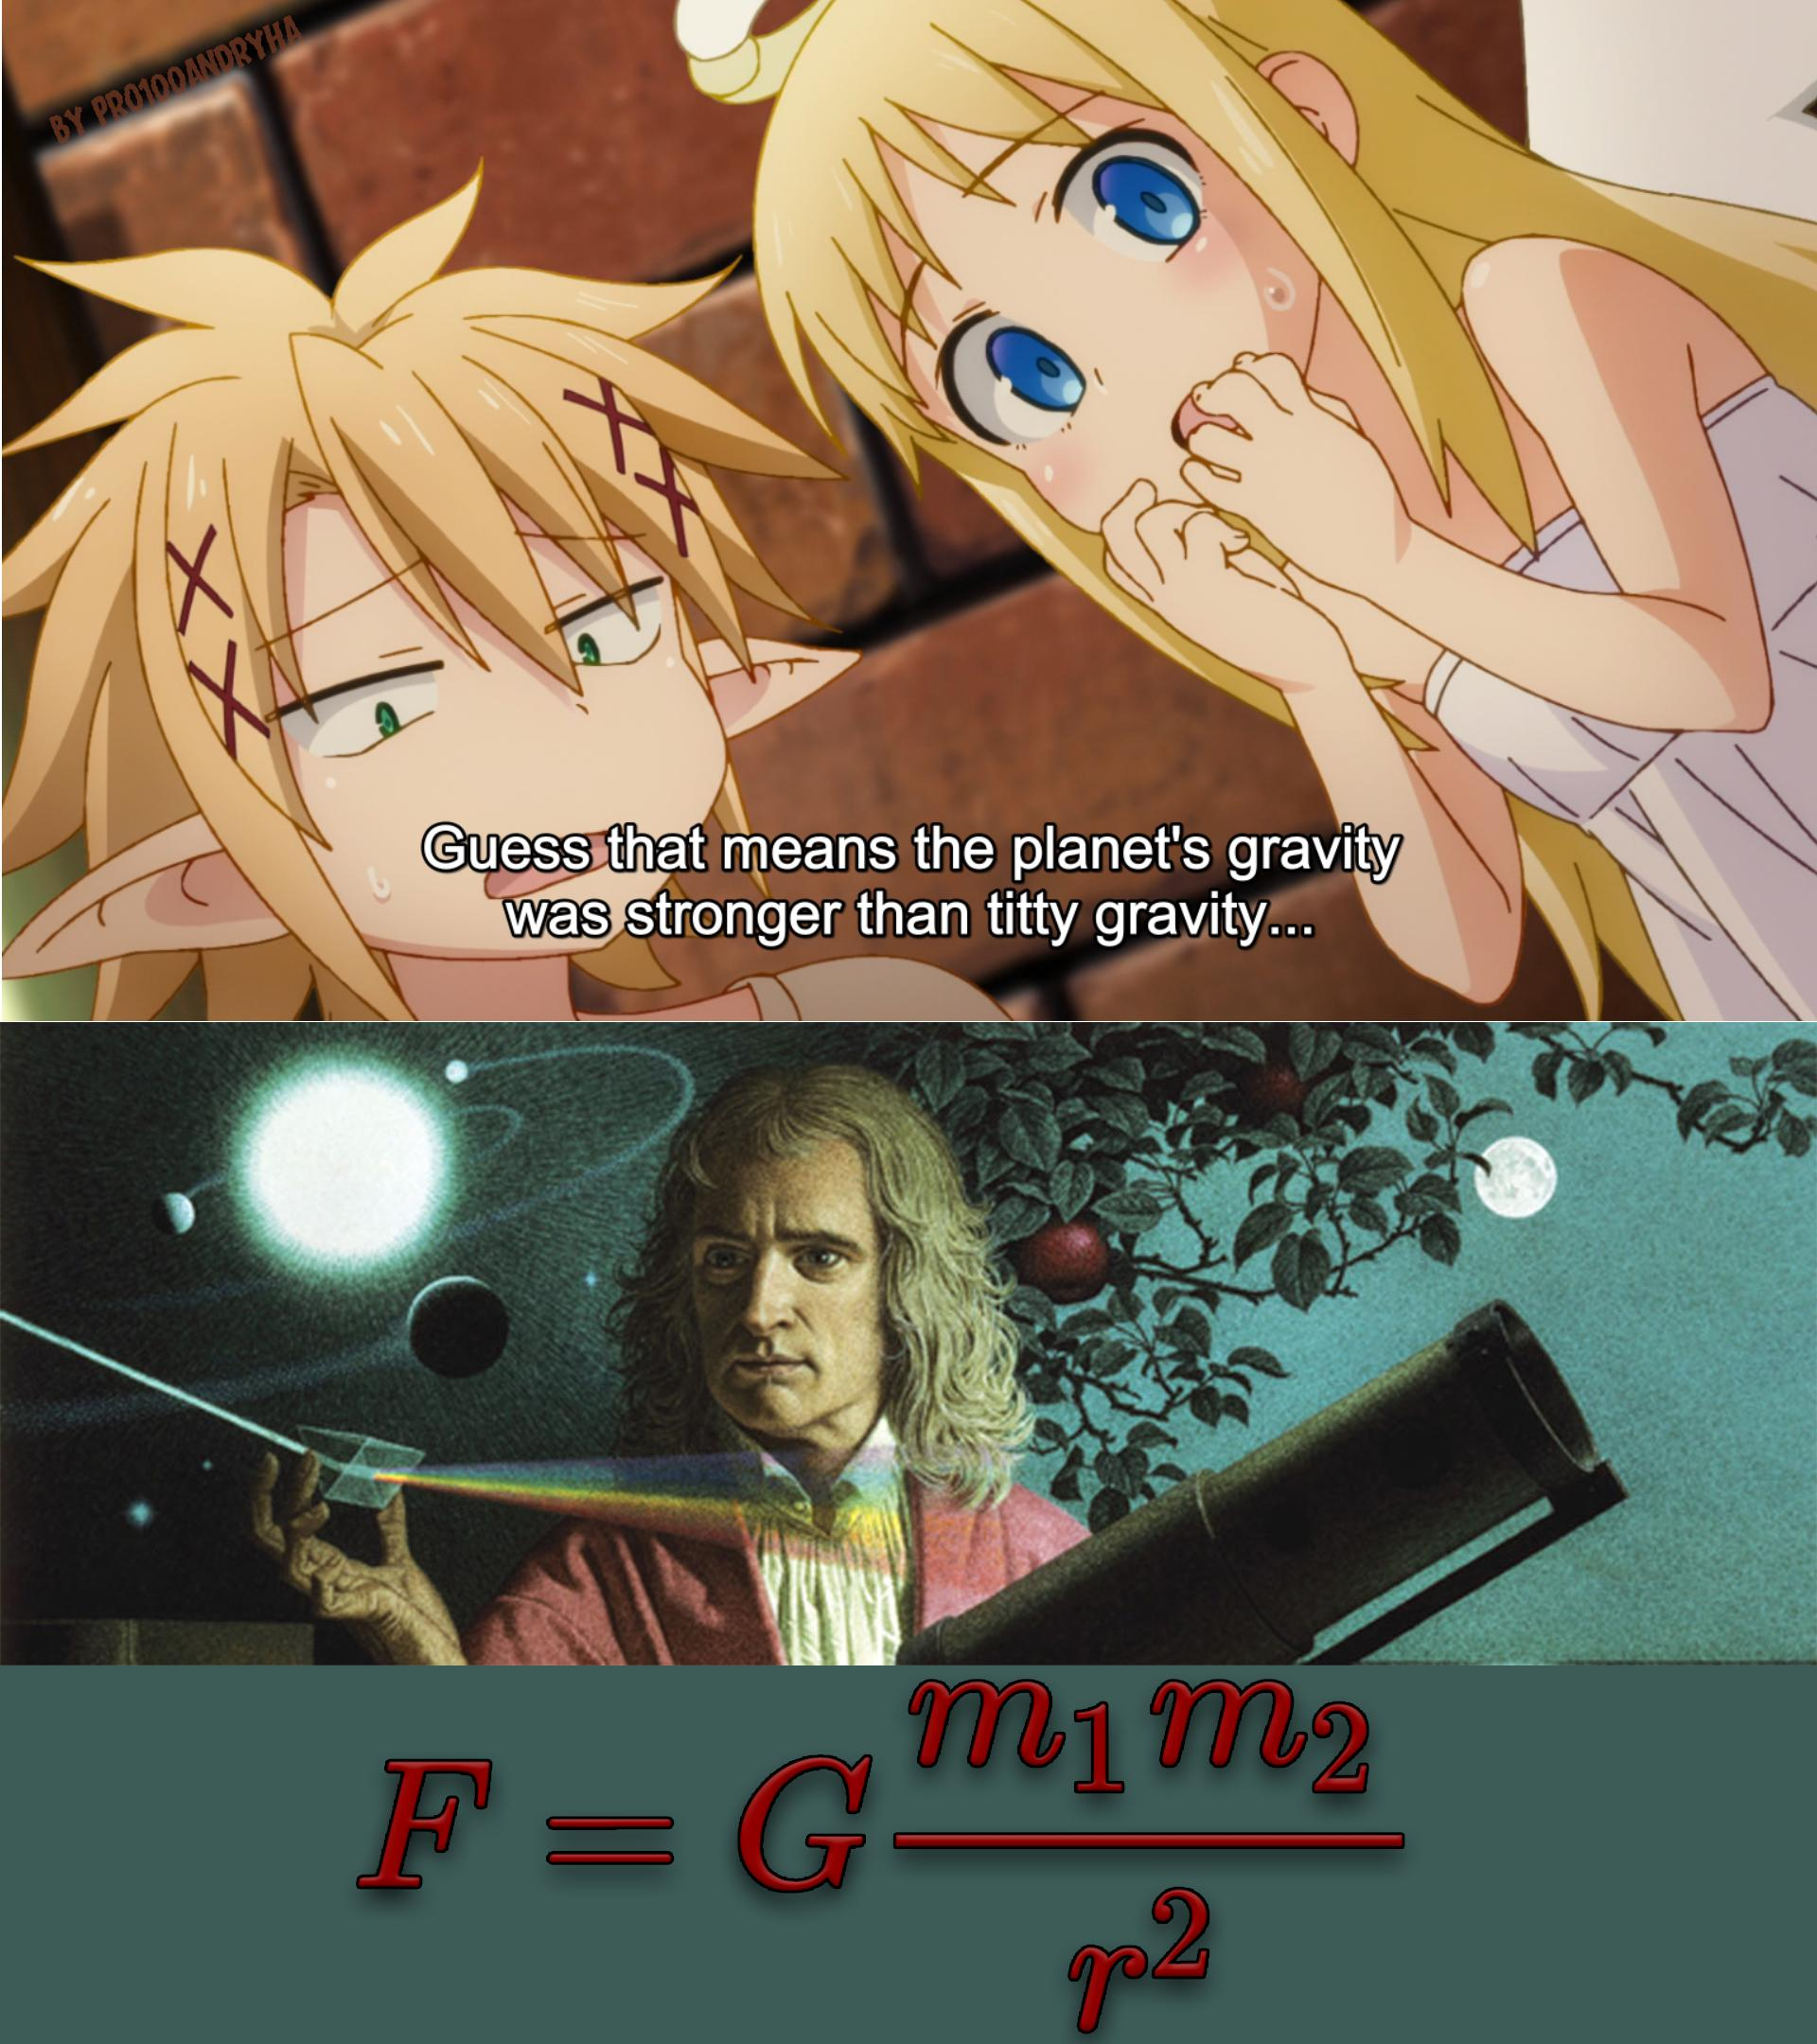 Newton Discovered The Law Of Universal Gravitation